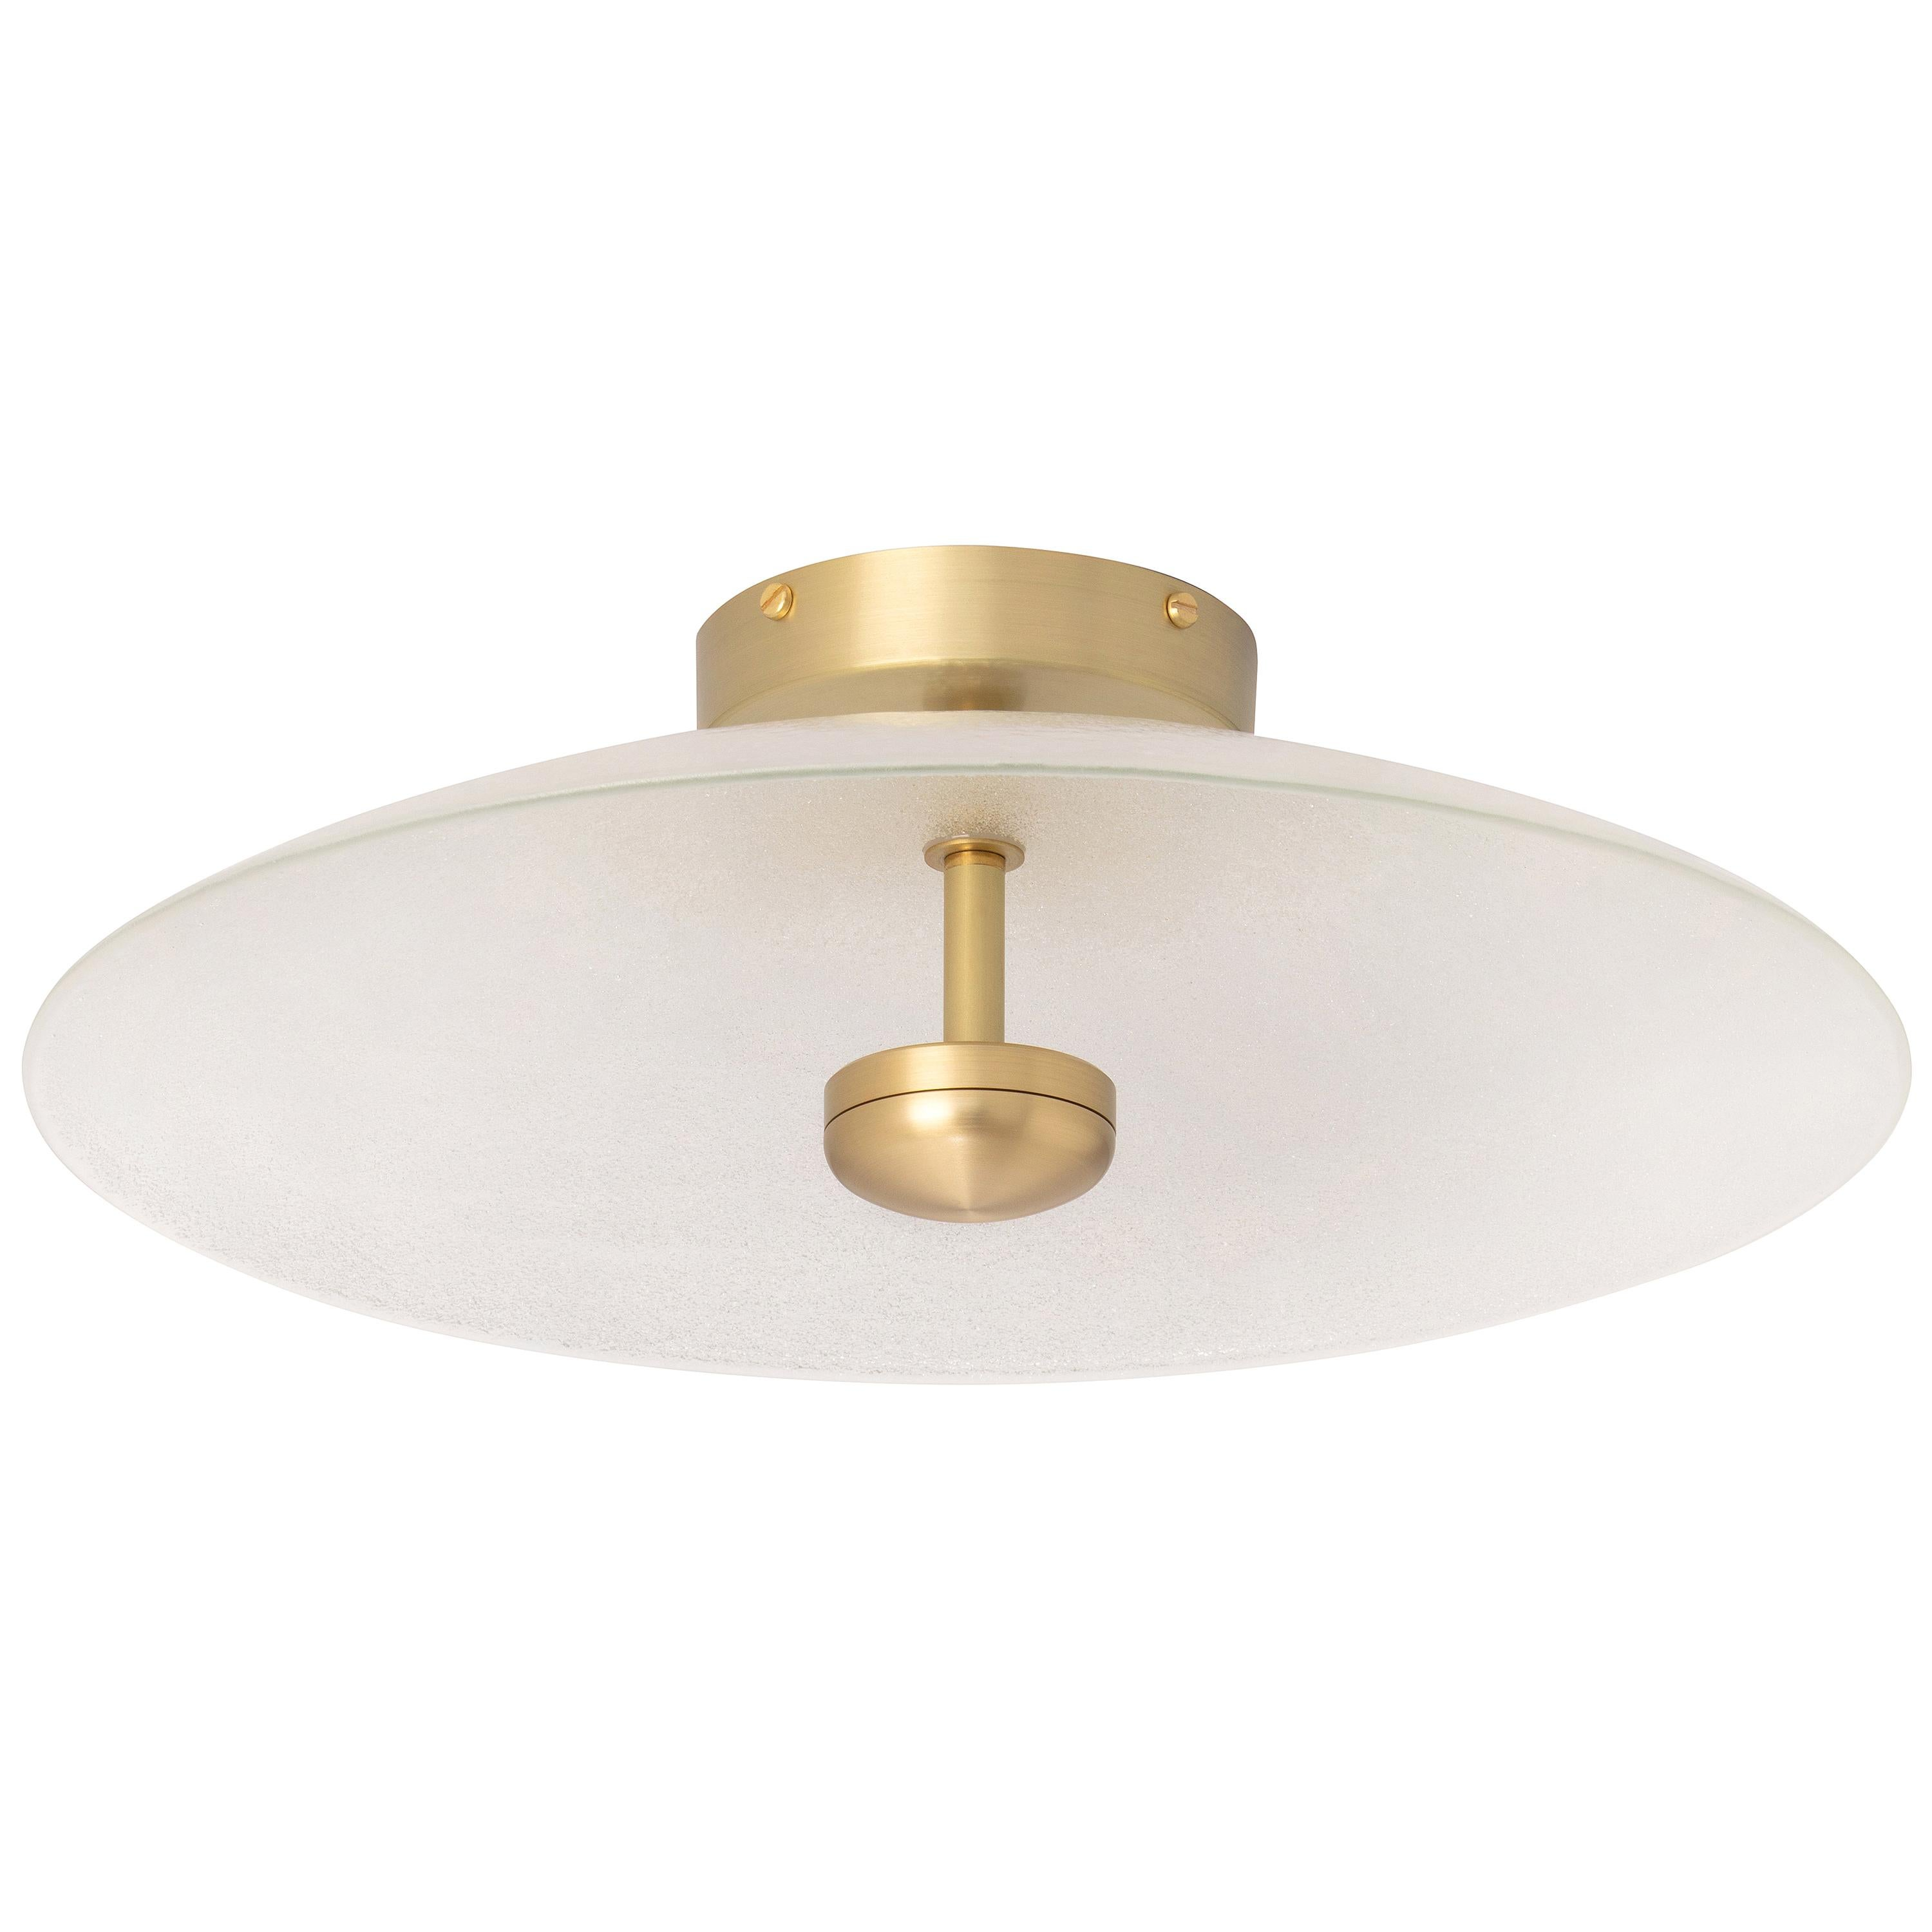 Brass Cielo Large Ceiling Lamp by CTO Lighting